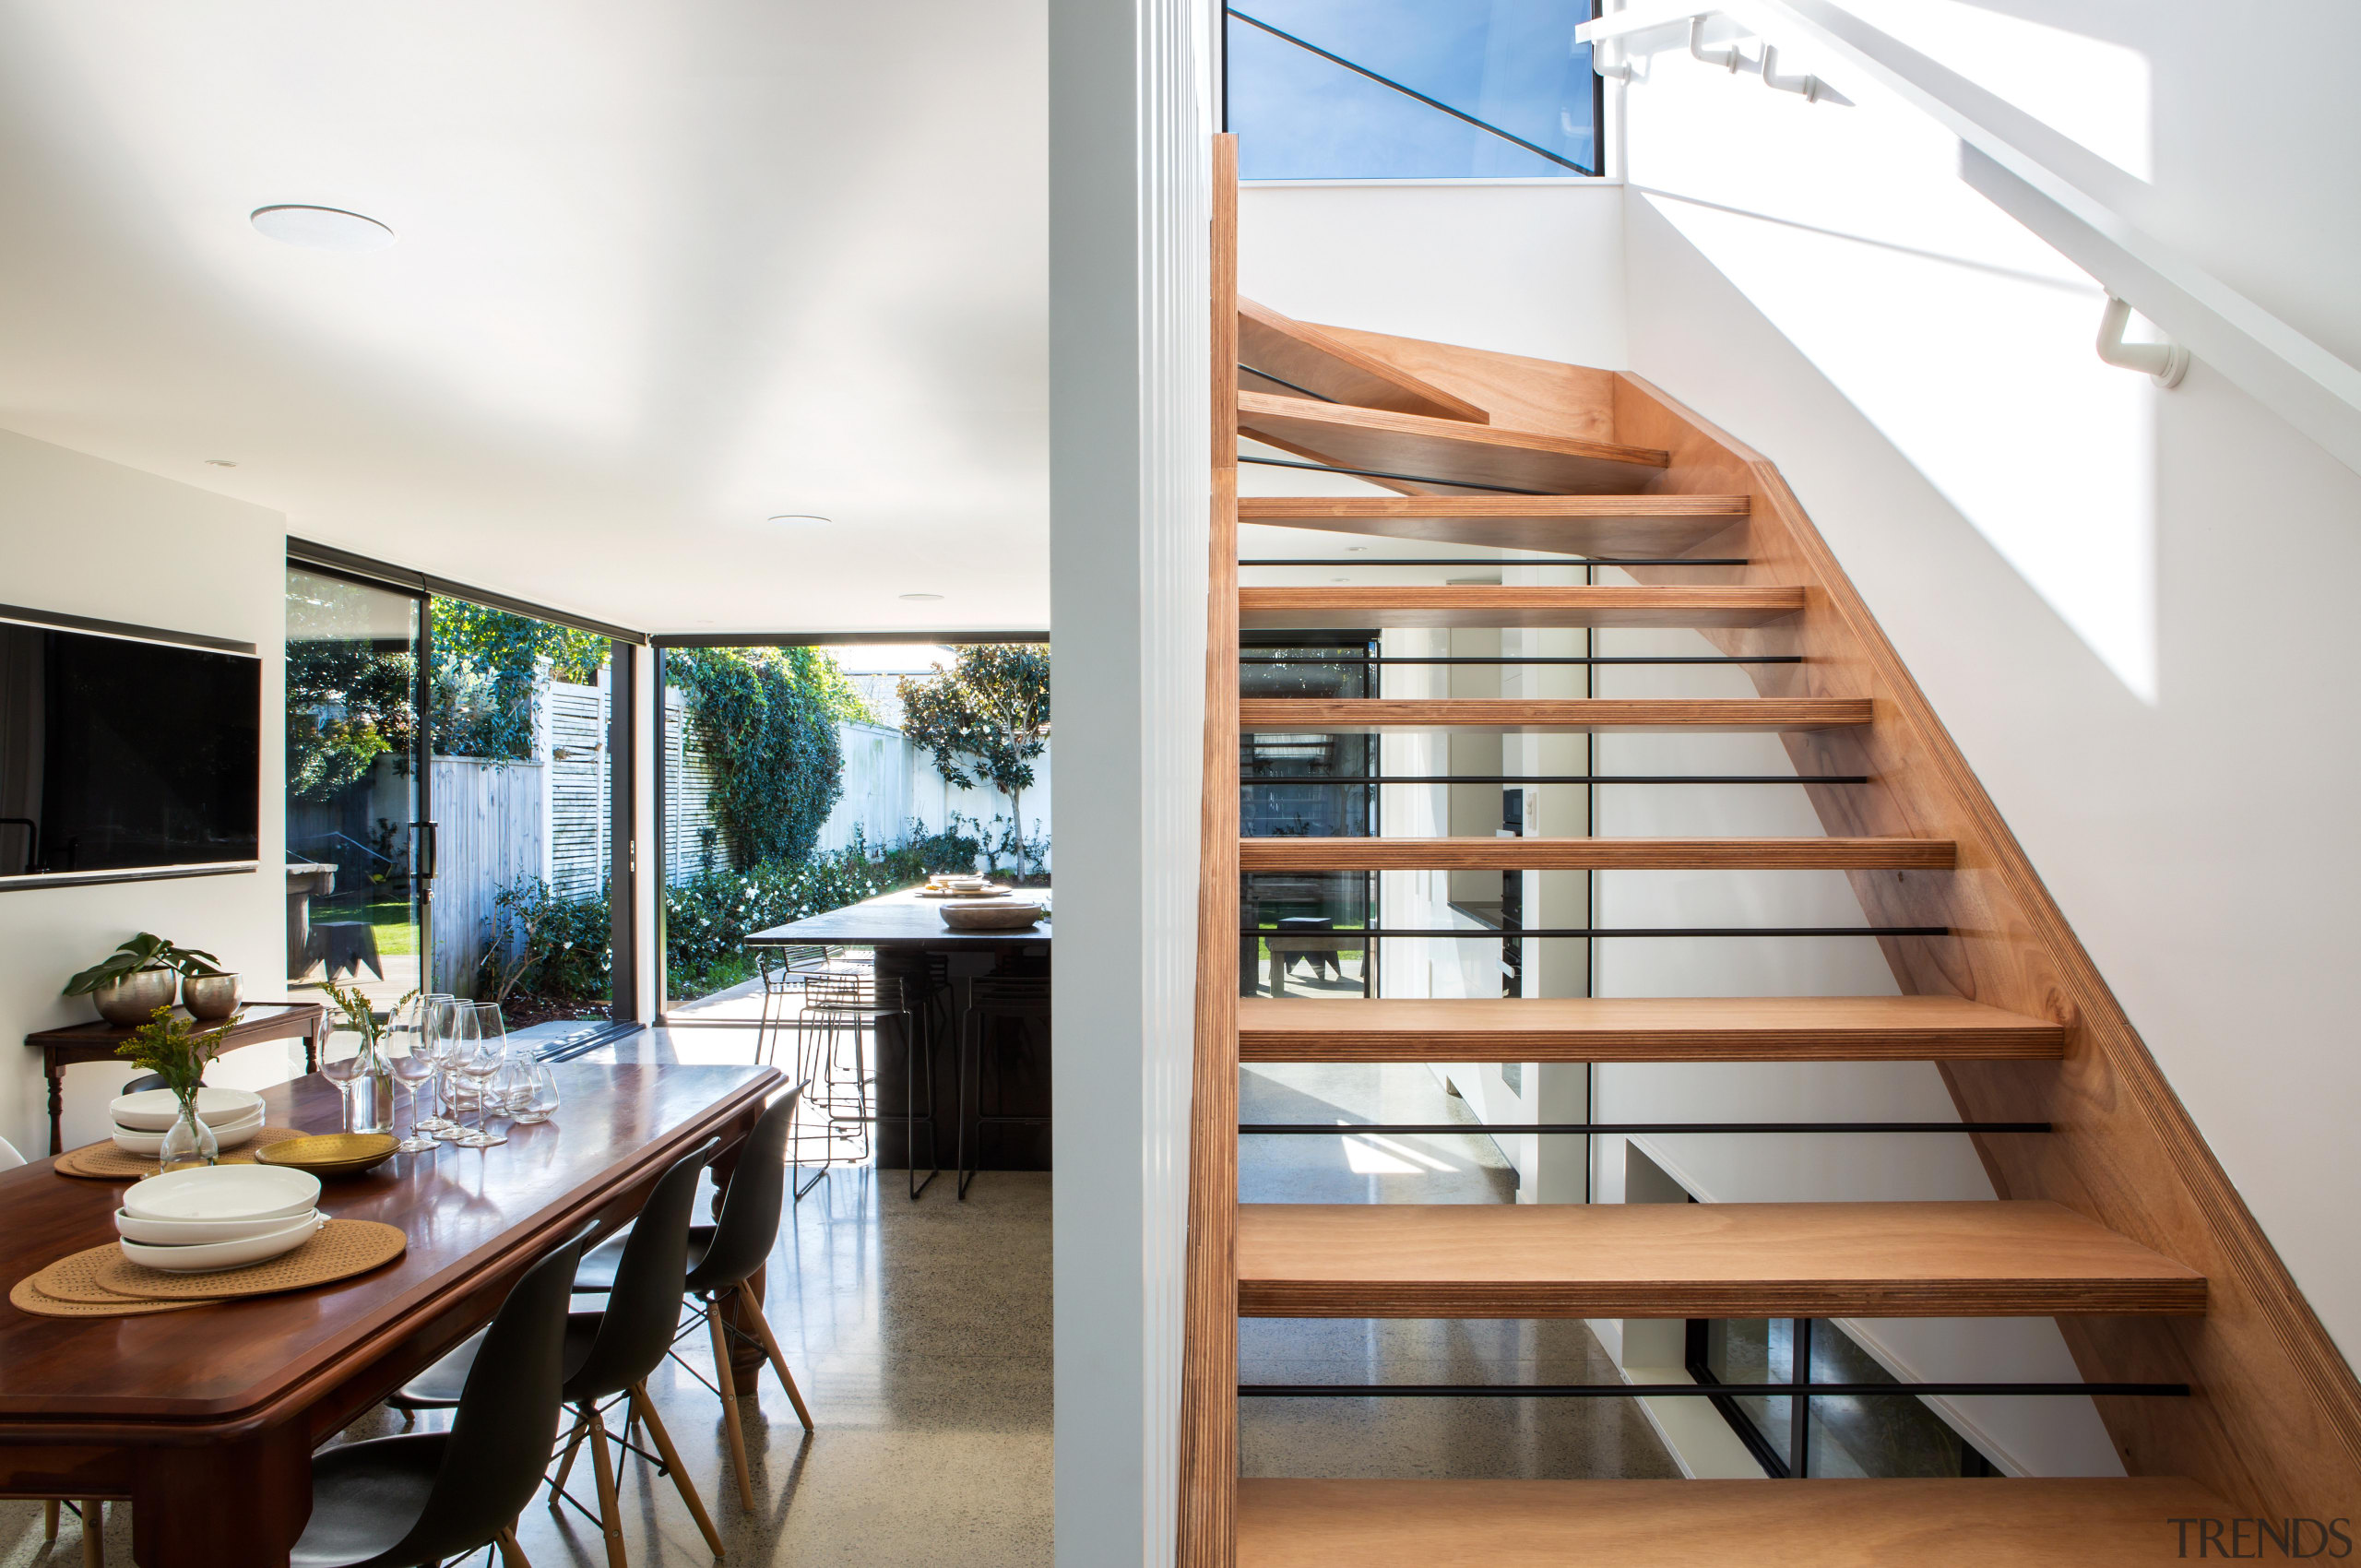 Let there be light  large corner sliders architecture, handrail, house, interior design, real estate, stairs, white